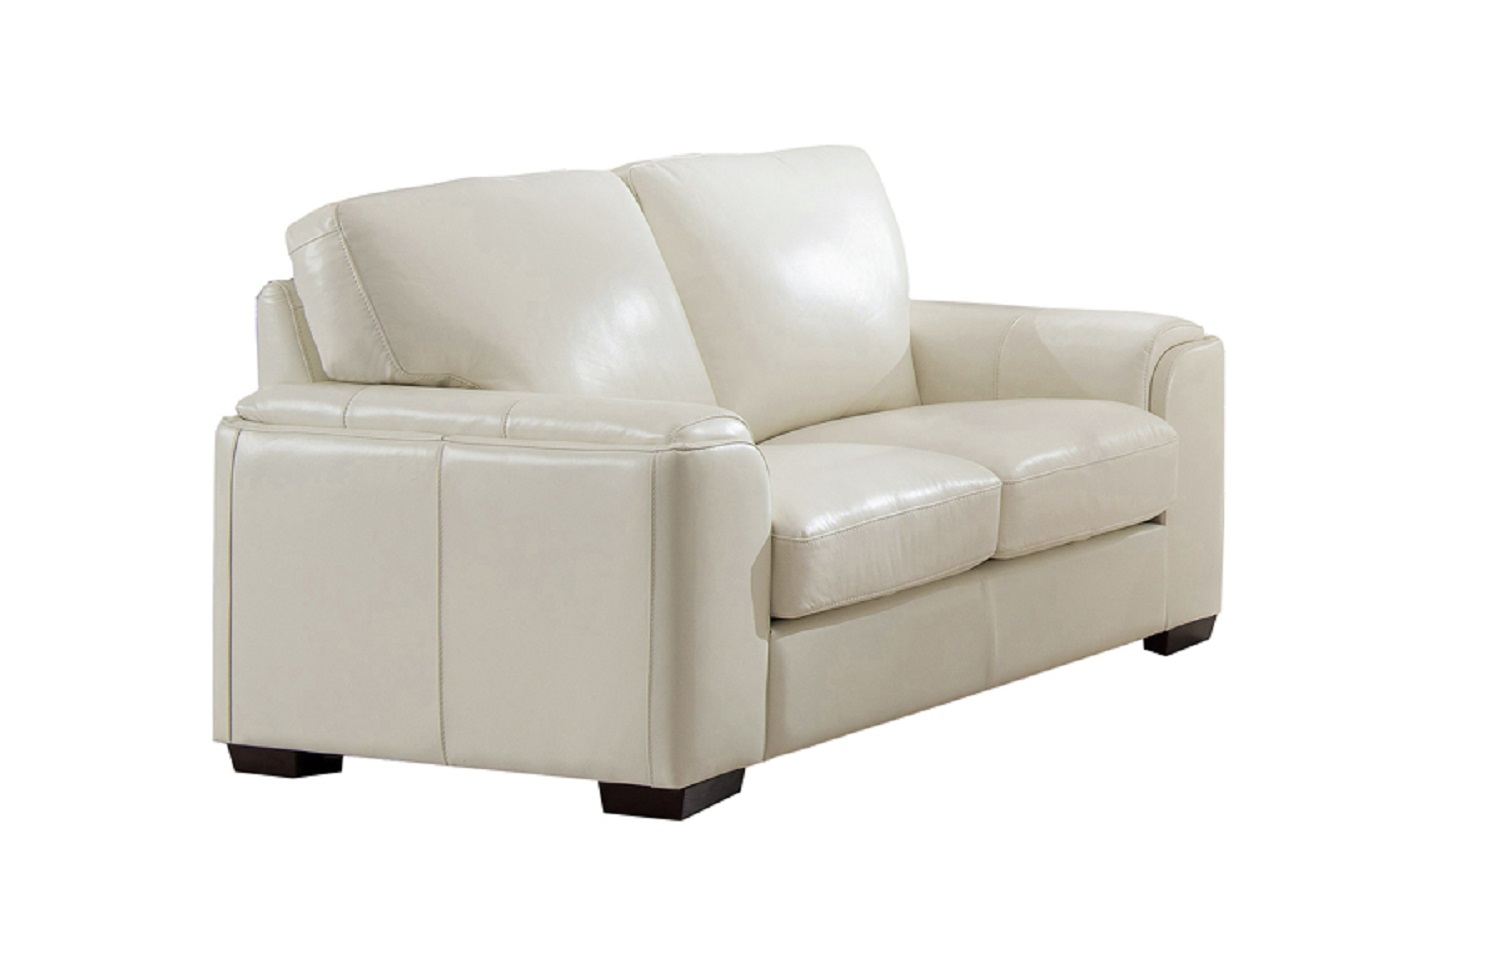 Jane Furniture Suzanne Top Grain Ivory White Leather